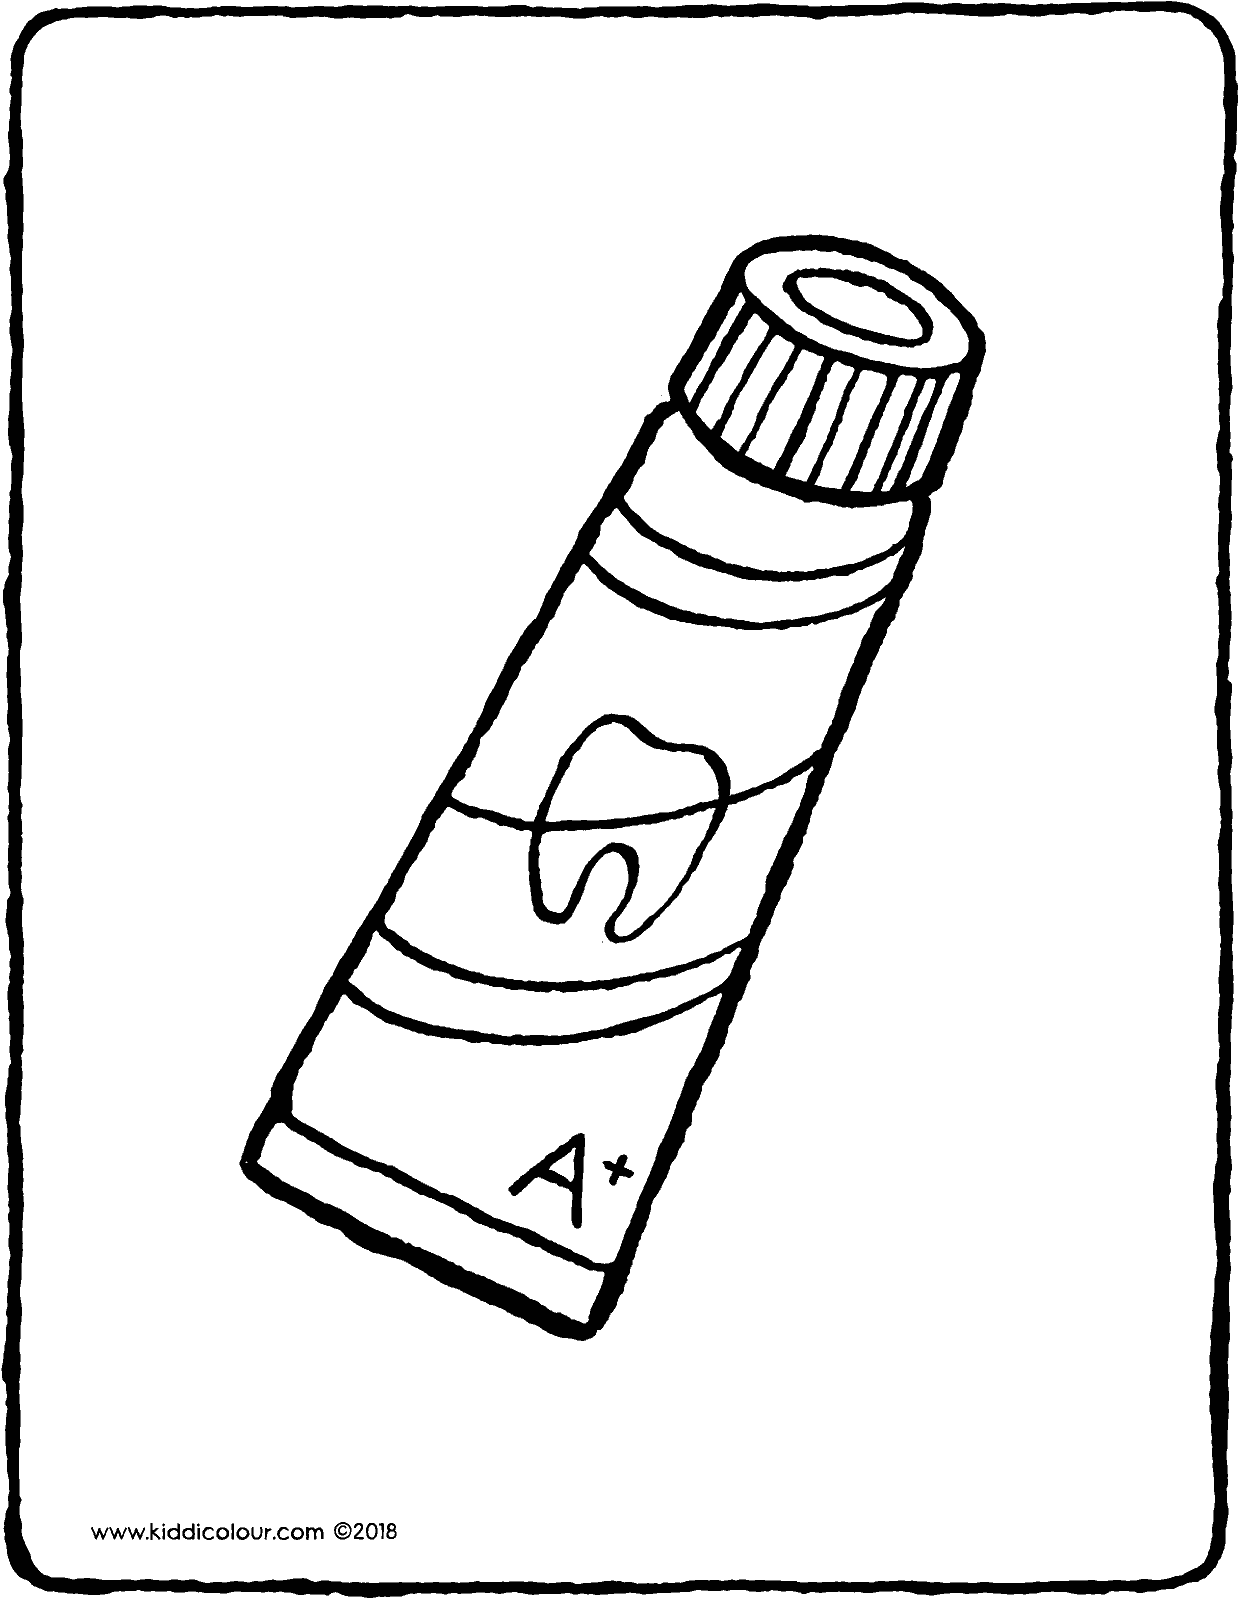 tube of toothpaste colouring page drawing picture 01V